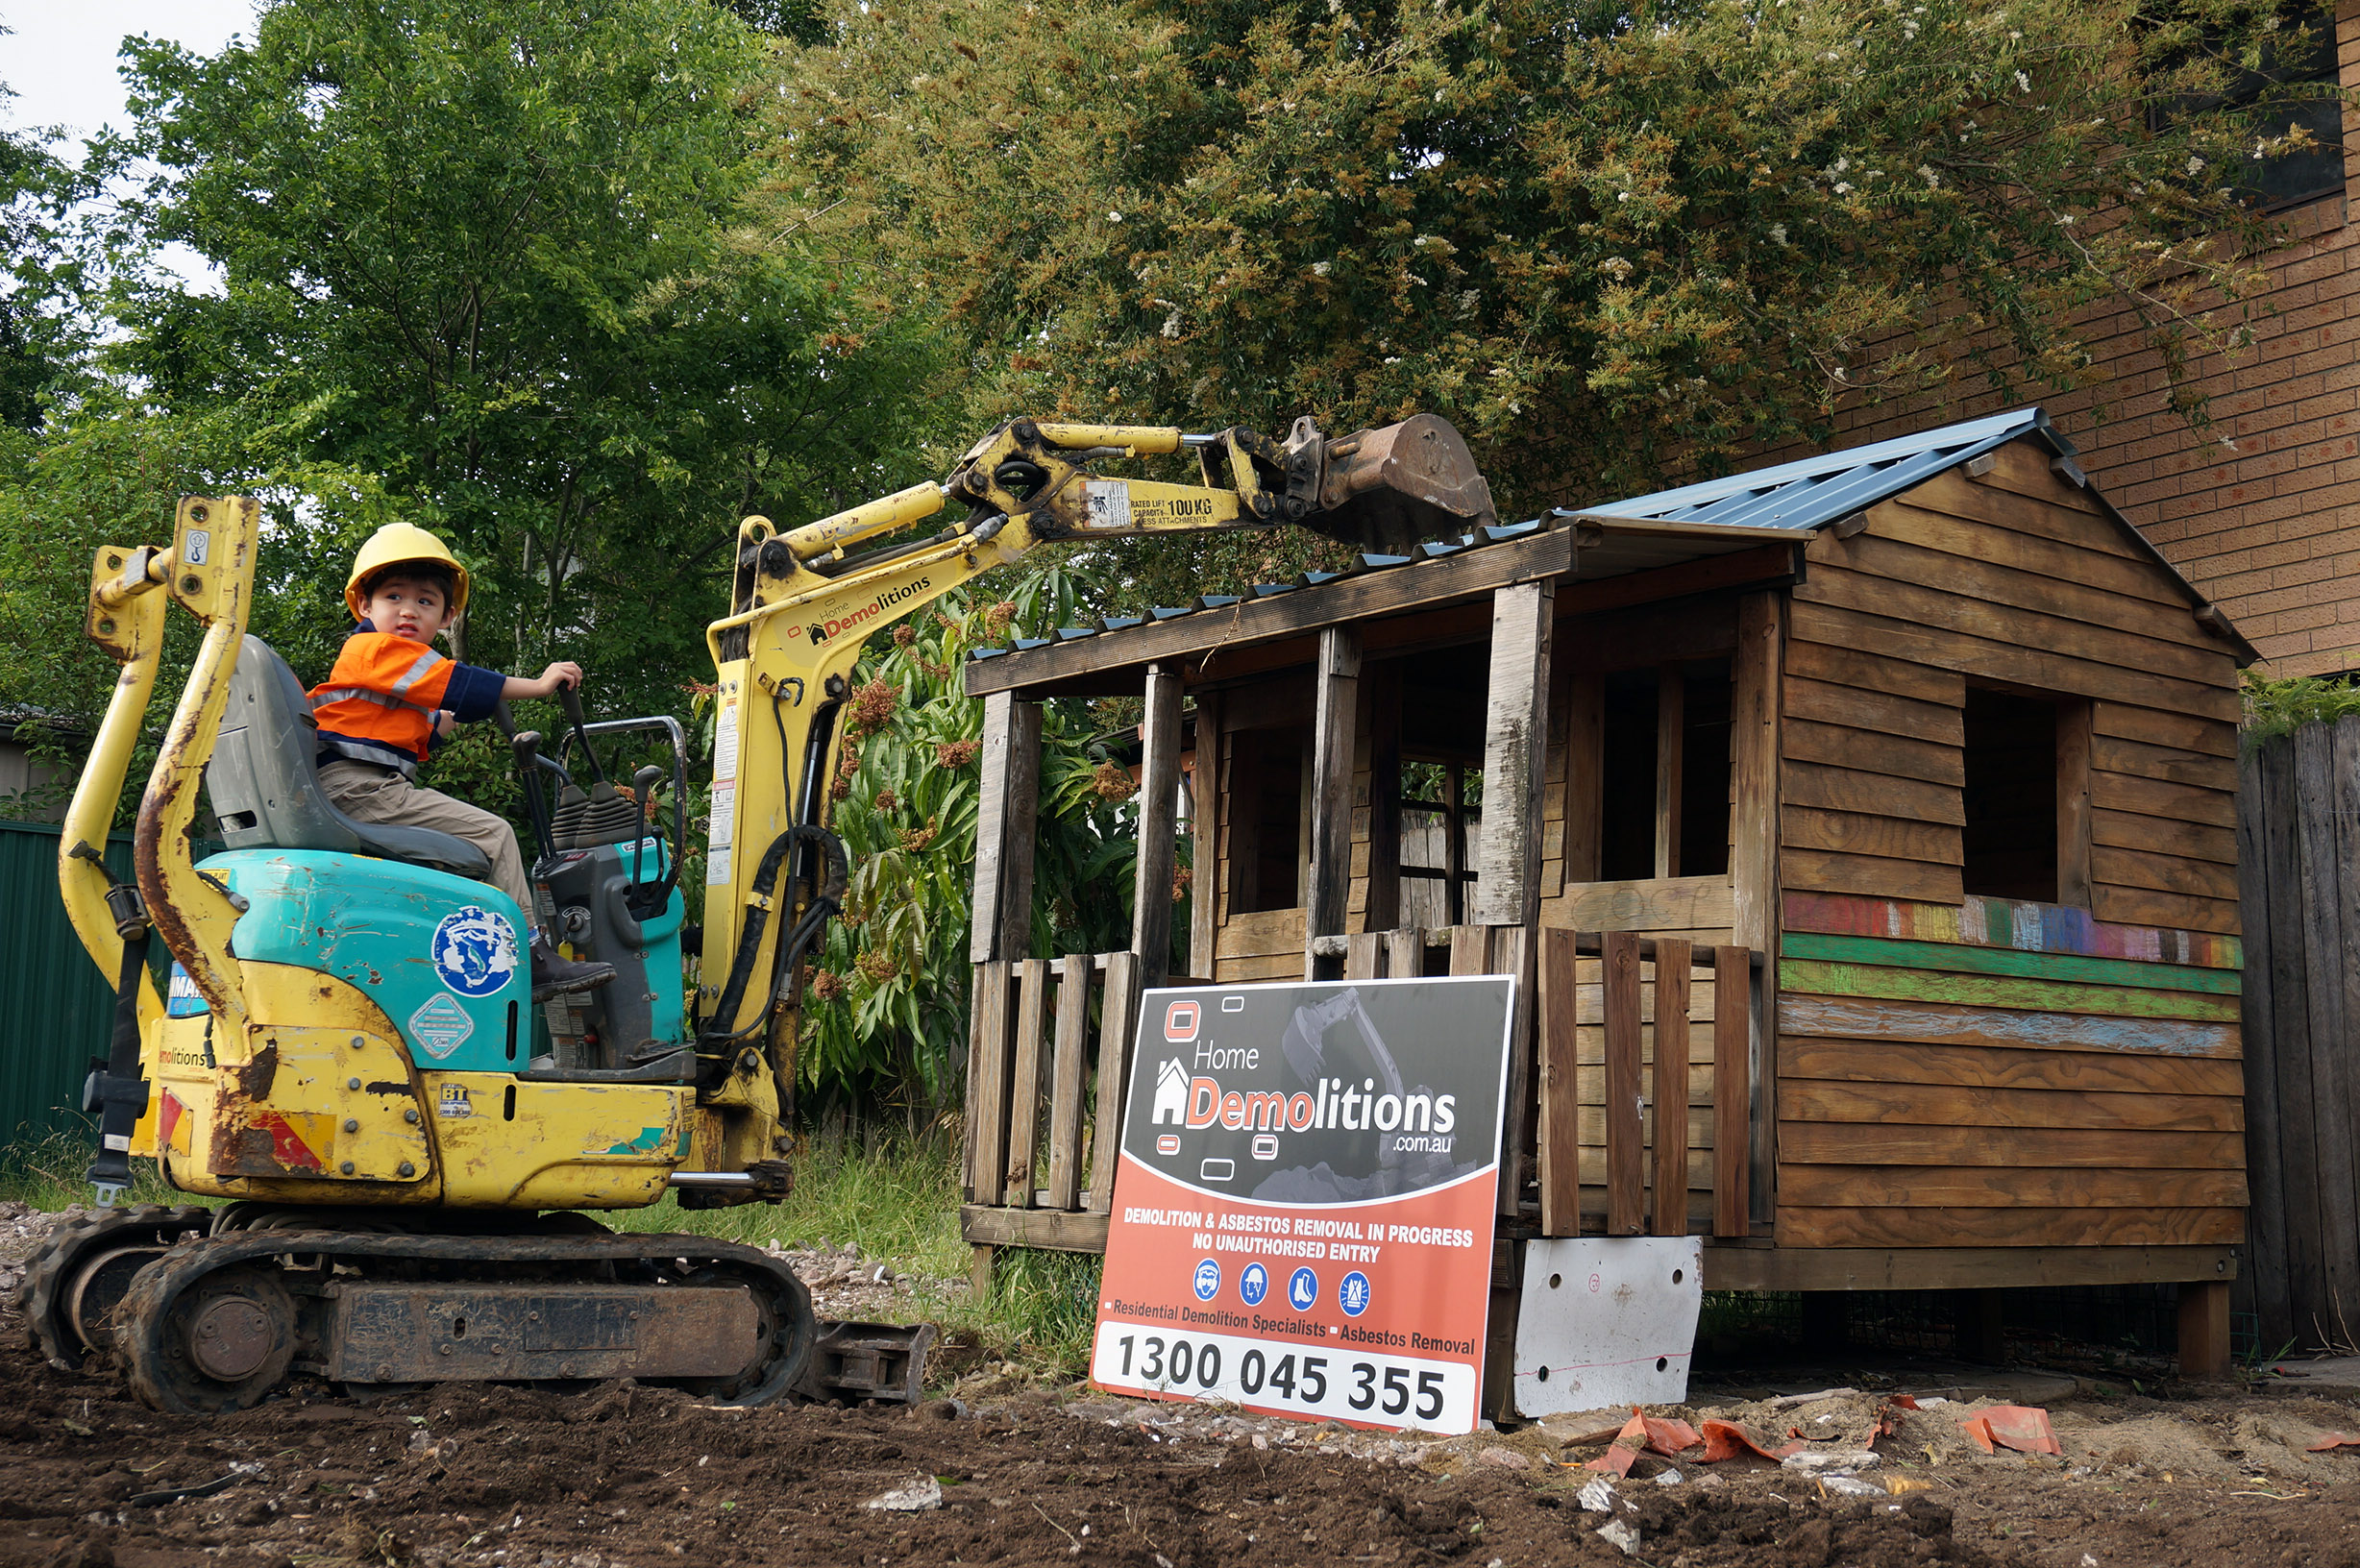 The youngest member of the Home Demolitions team hard at work!